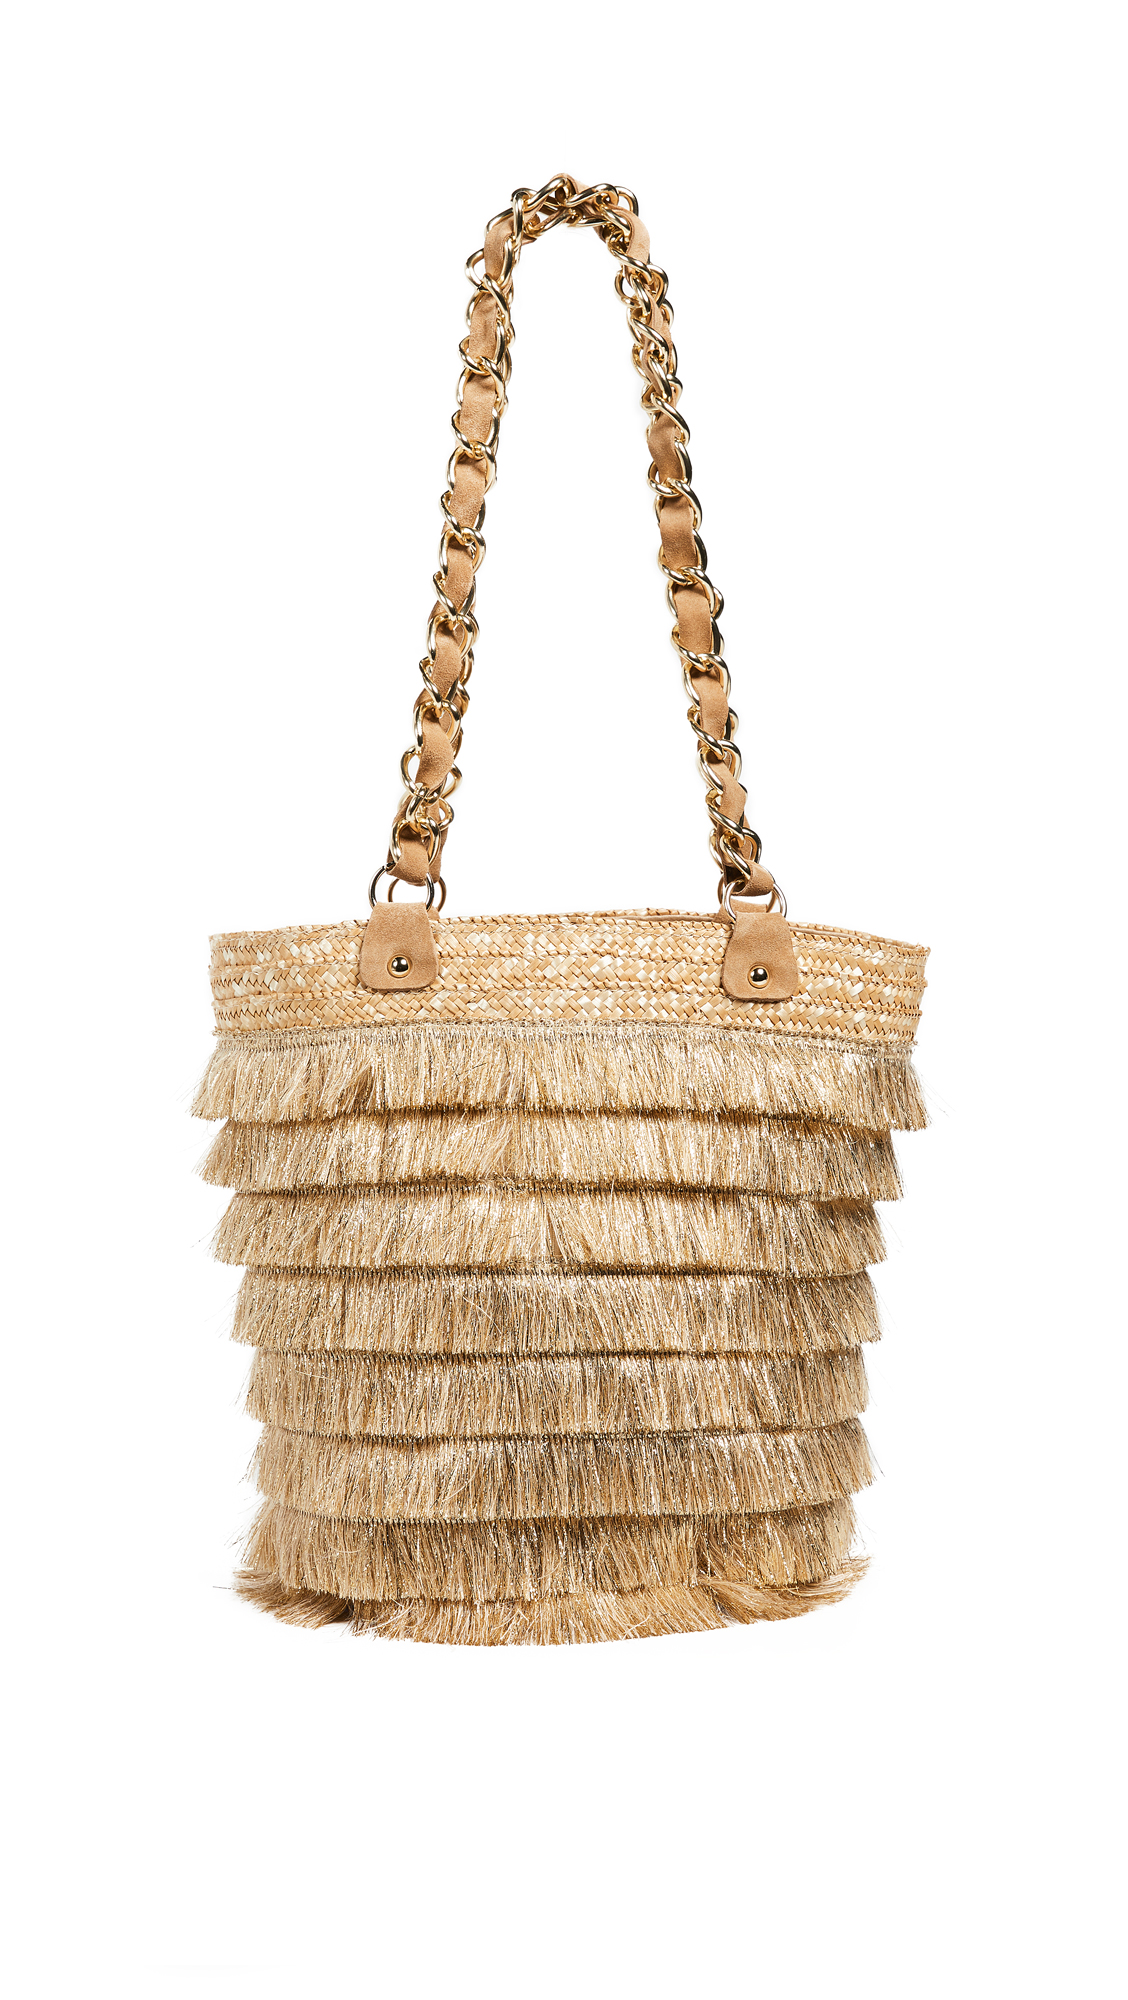 woven-bags-and-accessories-2018-fringe3